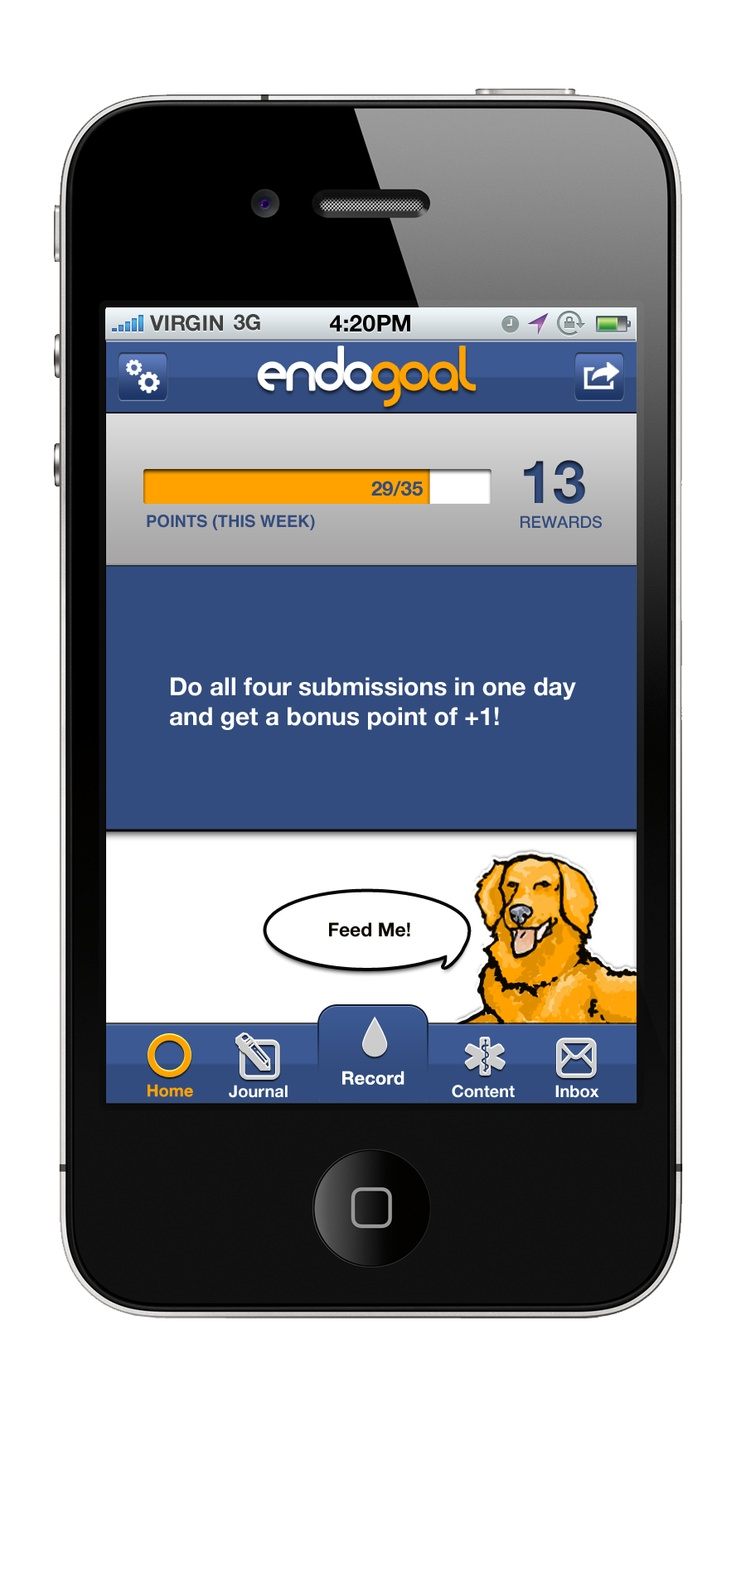 EndoGoal: a virtual pet game and rewards program for users of all ages with insulin dependent diabetes.